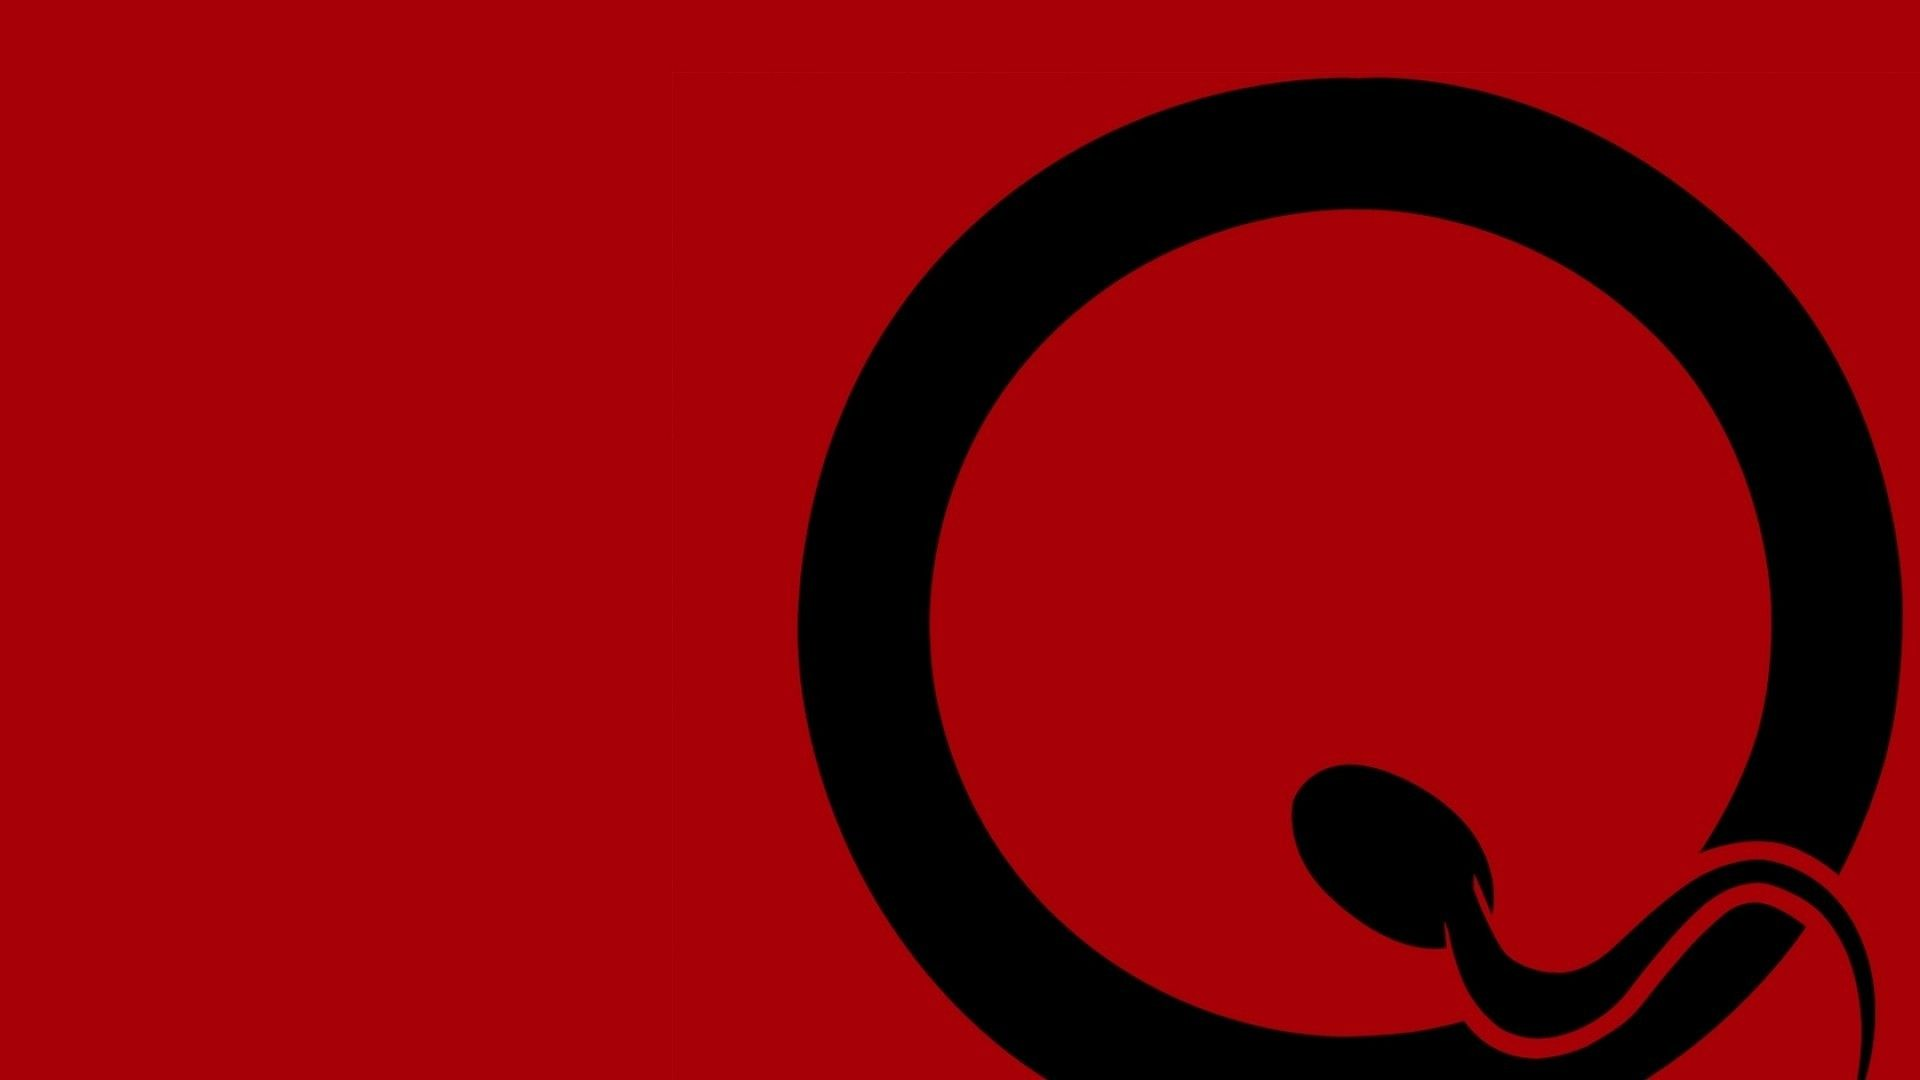 Queens Of The Stone Age Logo Queens Of The Stone Age Music Bands Logos Wallpaper Allwallpaper In Queens Of The Stone Age Band Logos Music Bands